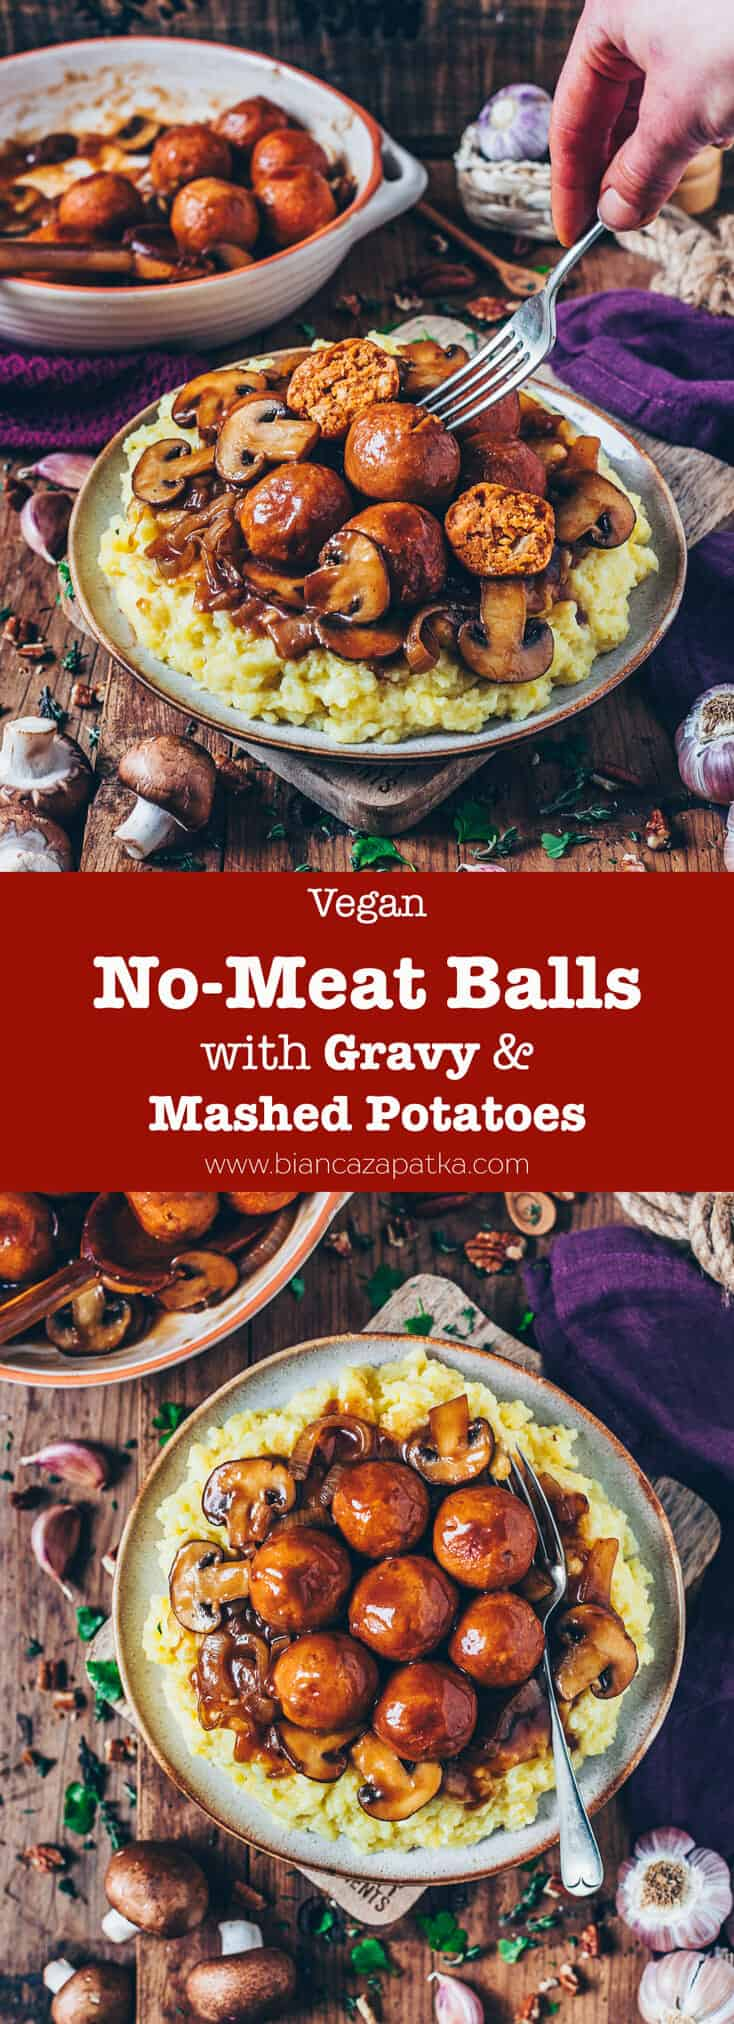 These easy to make No-Meat Balls (Vegan Meatballs) are the ultimate comfort food! Serve them over Mashed Potatoes and drench them in Vegan Gravy for a perfect Christmas dinner or any time!